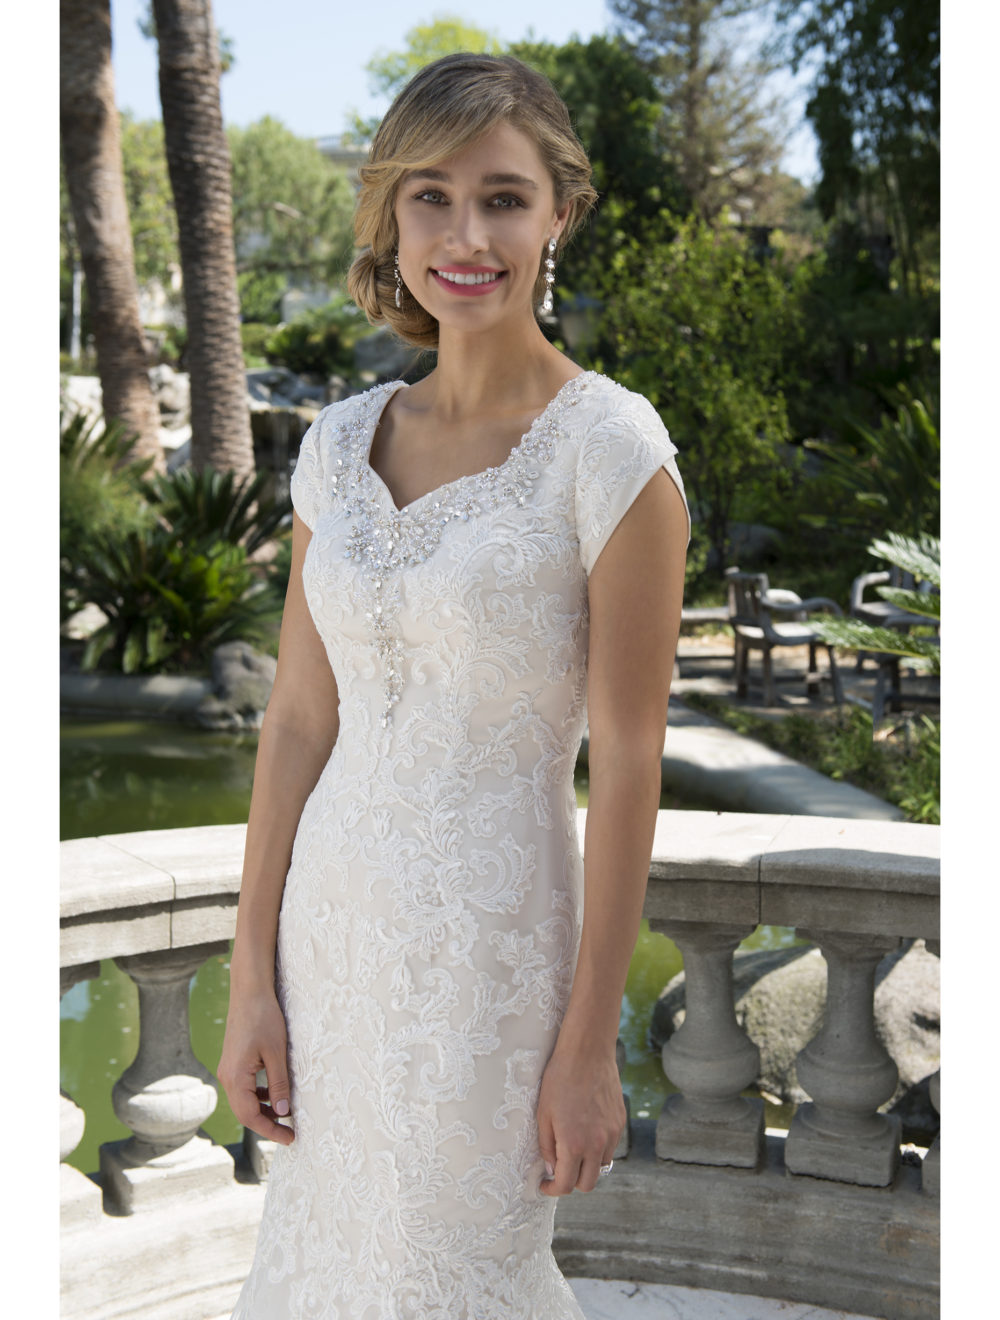 Vintage Champagne Lace Tulle Mermaid Modest Wedding Dresses With Cap Sleeves Beaded 2017 Temple Bridal Gowns Mature Brides Modest Wedding Dress Wedding Dressbridal Gown Aliexpress,Purple Fall Wedding Guest Dresses